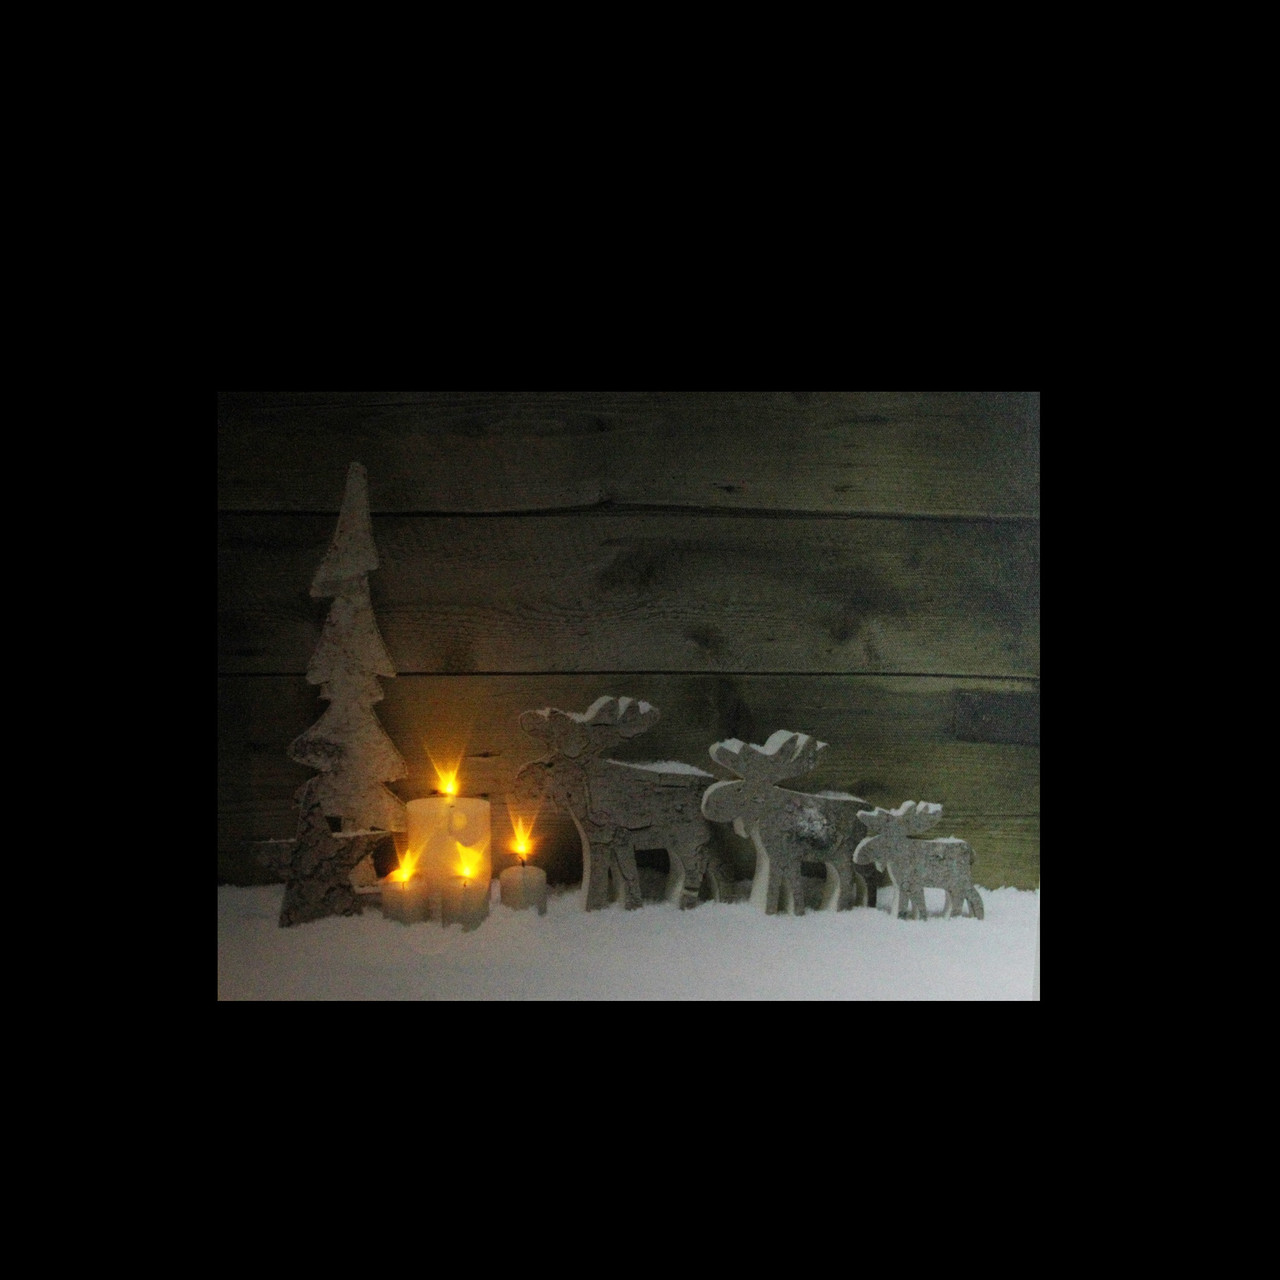 led lighted flickering candles and winter wooden moose canvas wall art 12 x 1575 32621255 - Lighted Christmas Wall Decorations